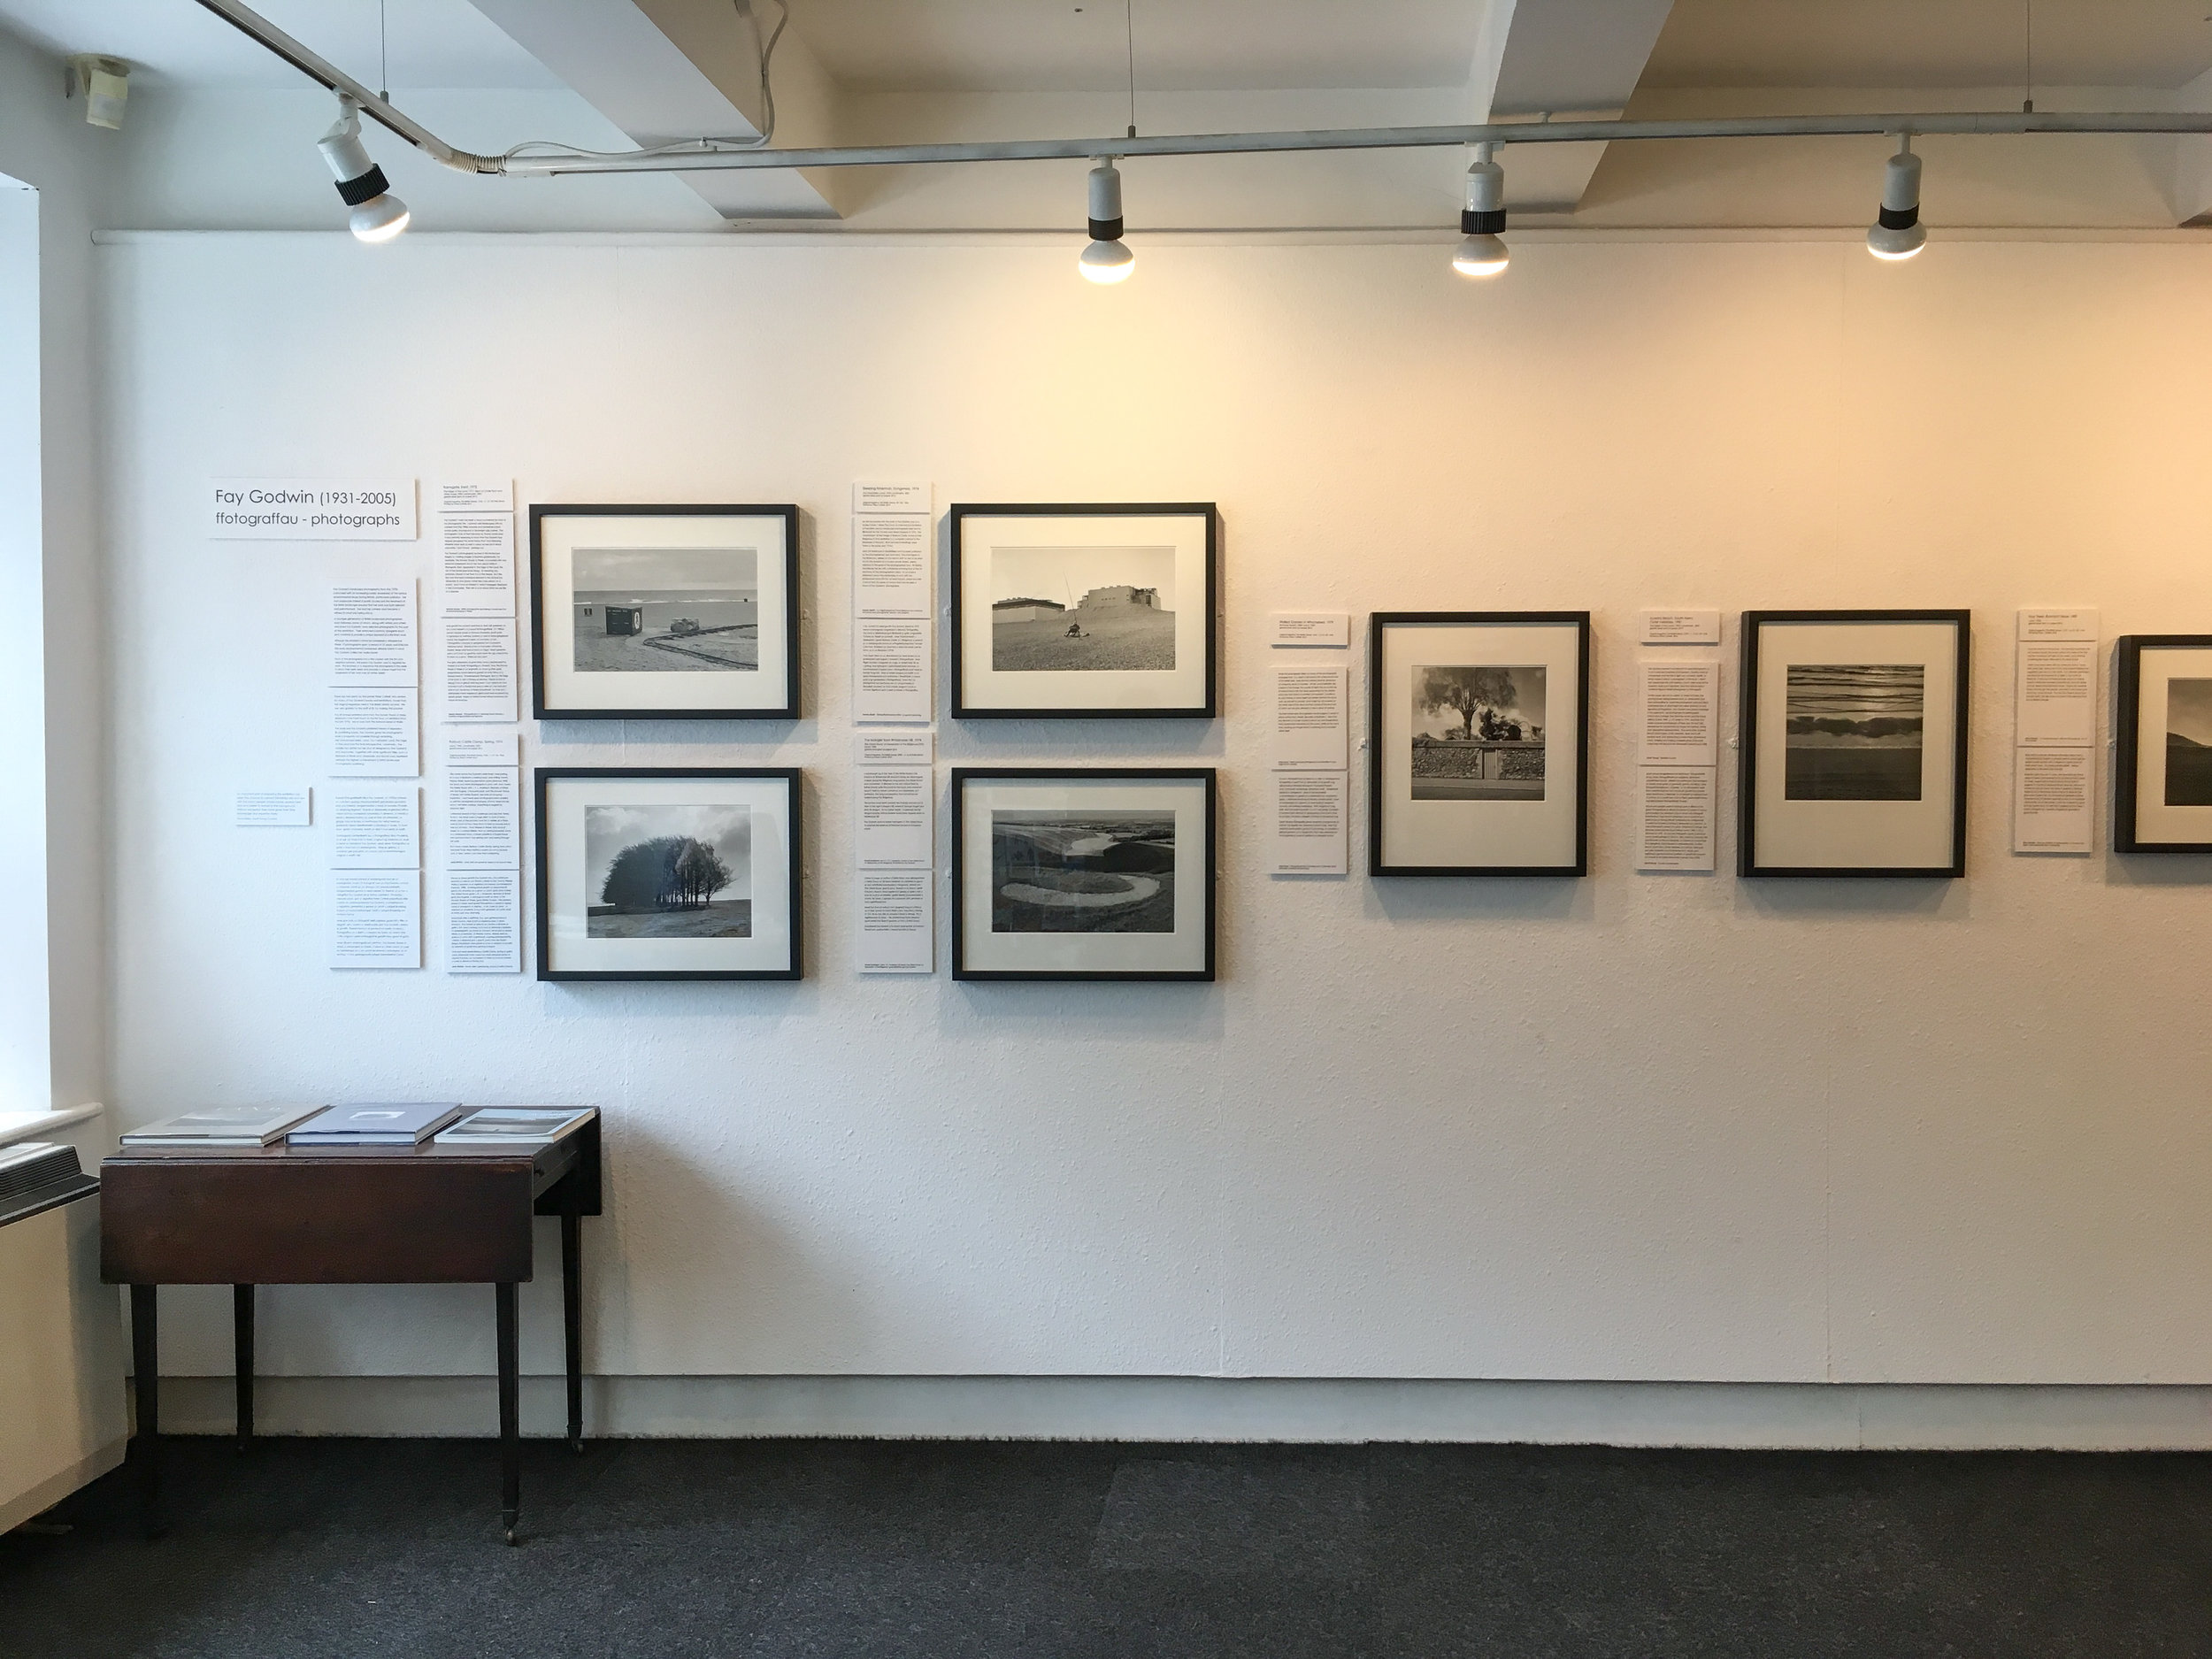 The ground floor of the Fay Godwin exhibition with an introduction of some of her most famous pictures and upstairs (no photographing allowed) revealing tantalising new to me original prints of  The Drover's Road of Wales